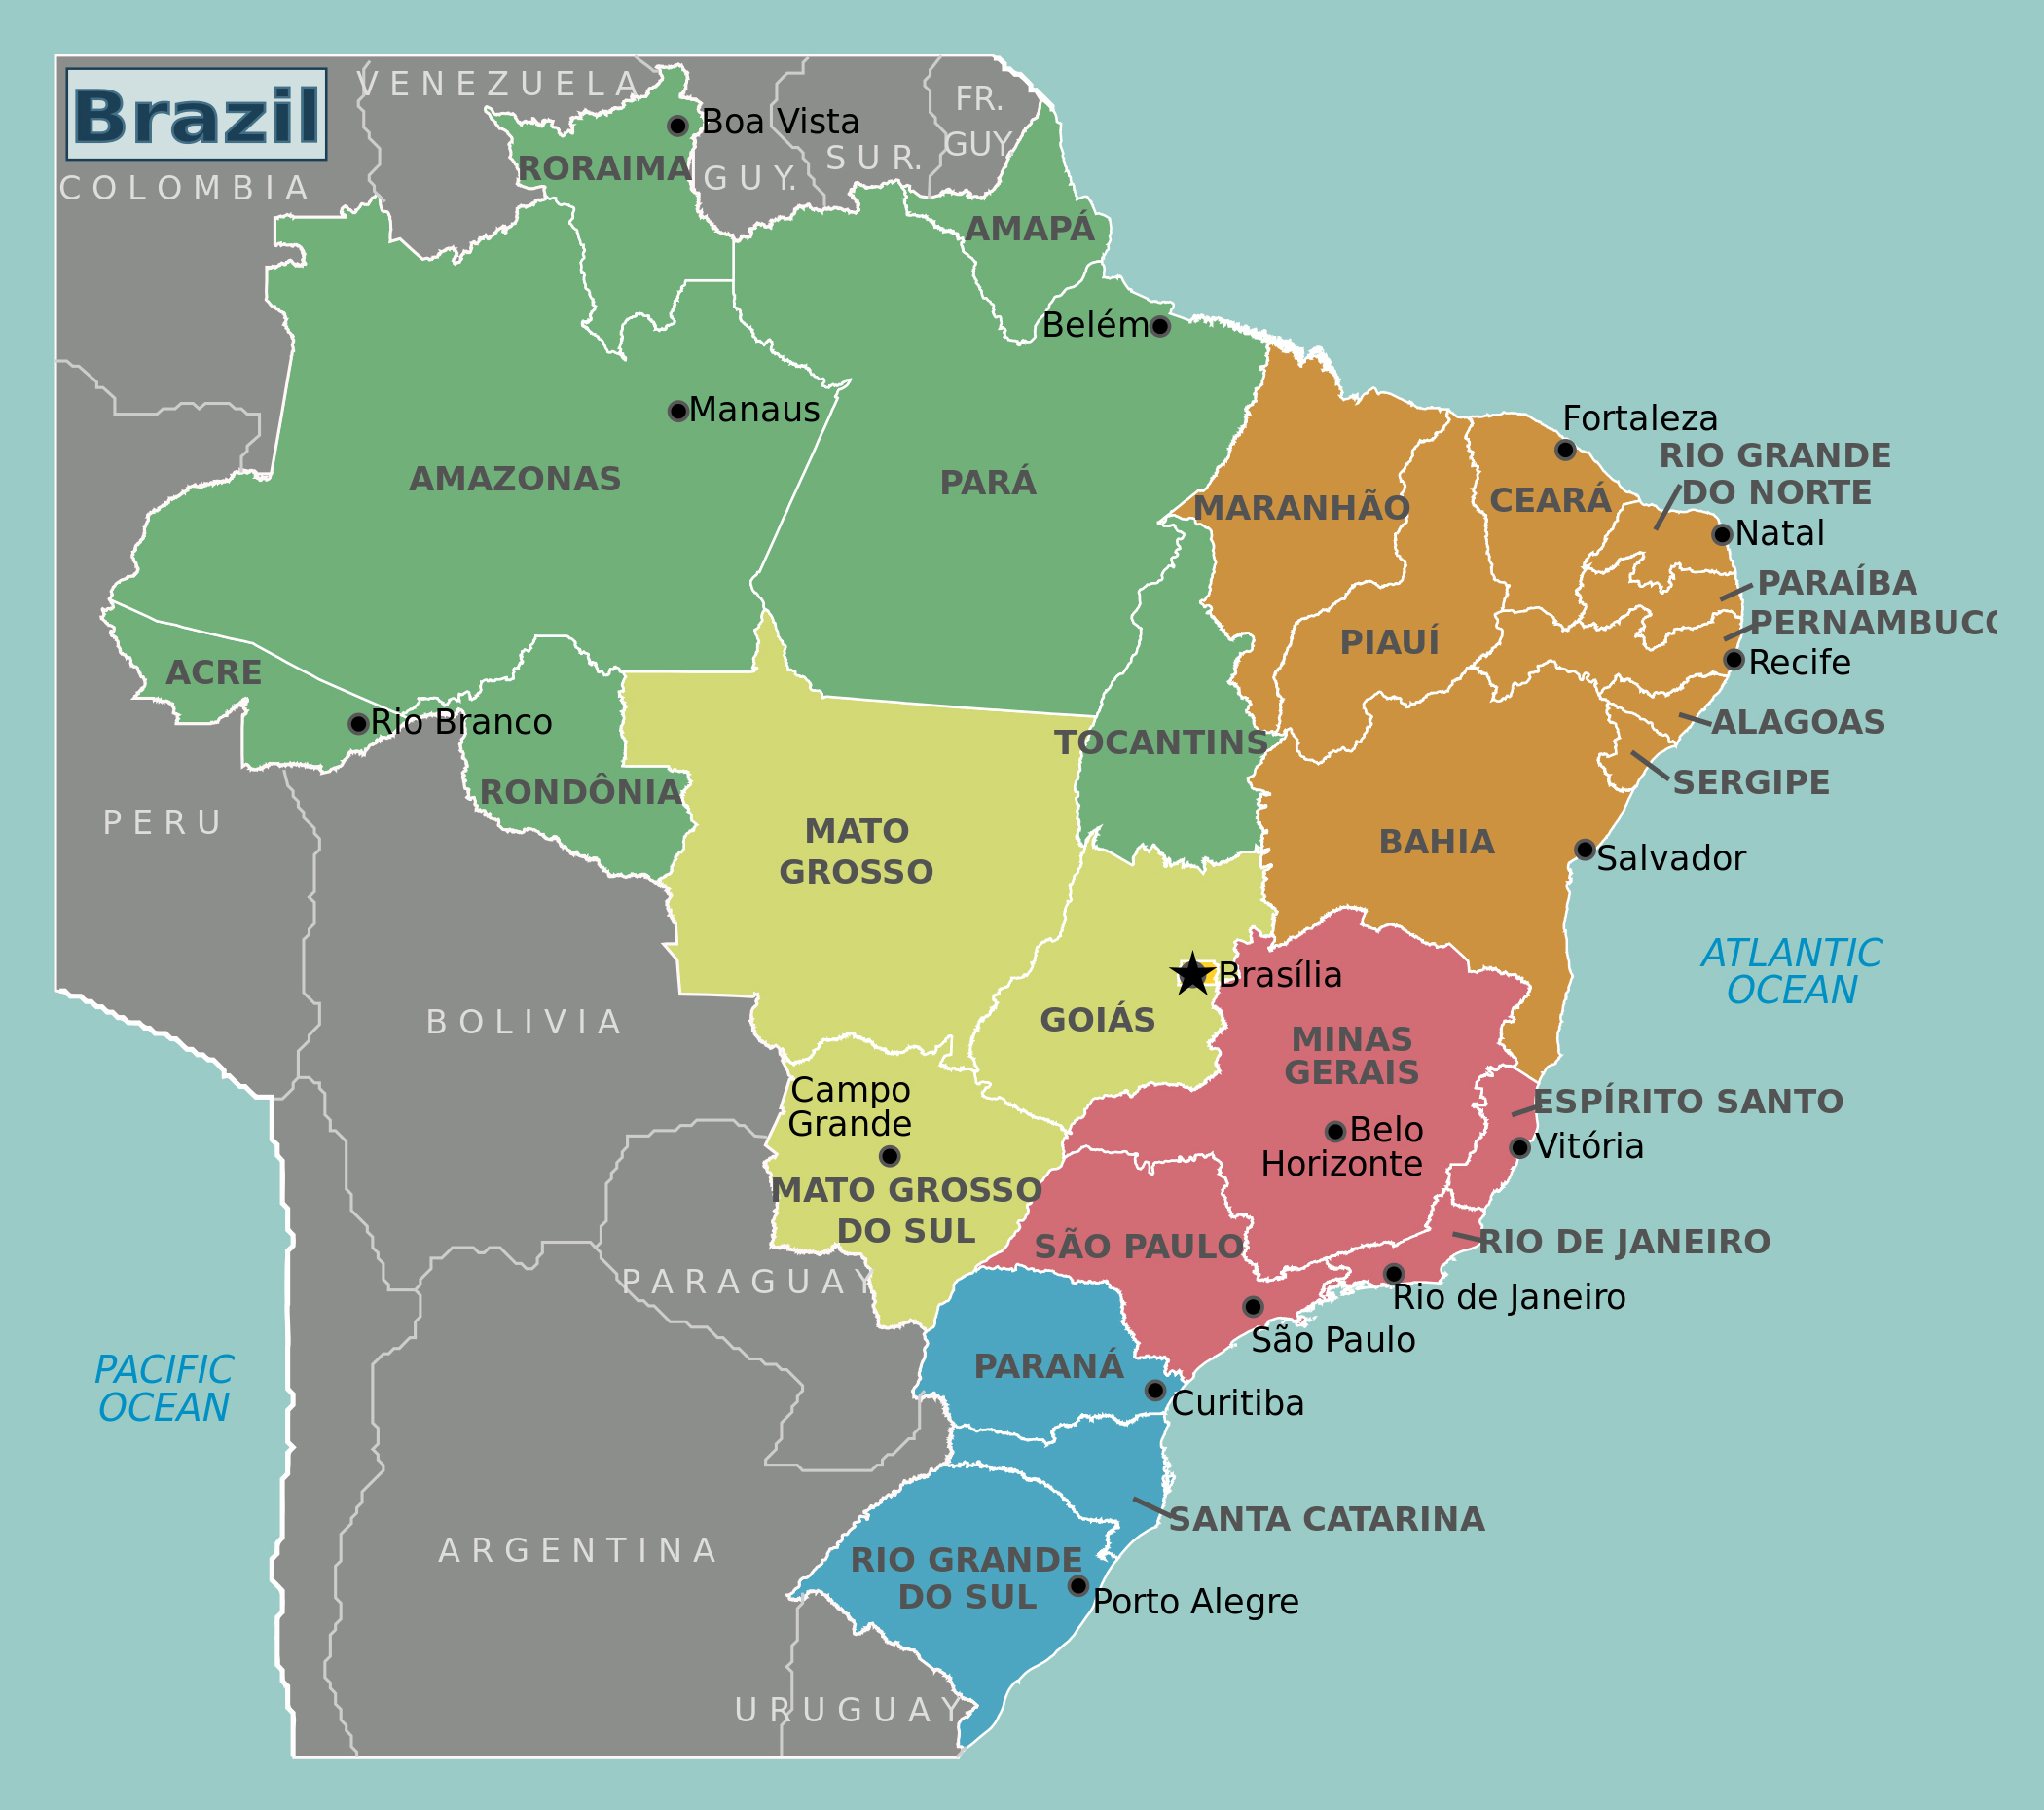 Large brazil regions map brazil south america mapsland maps large brazil regions map gumiabroncs